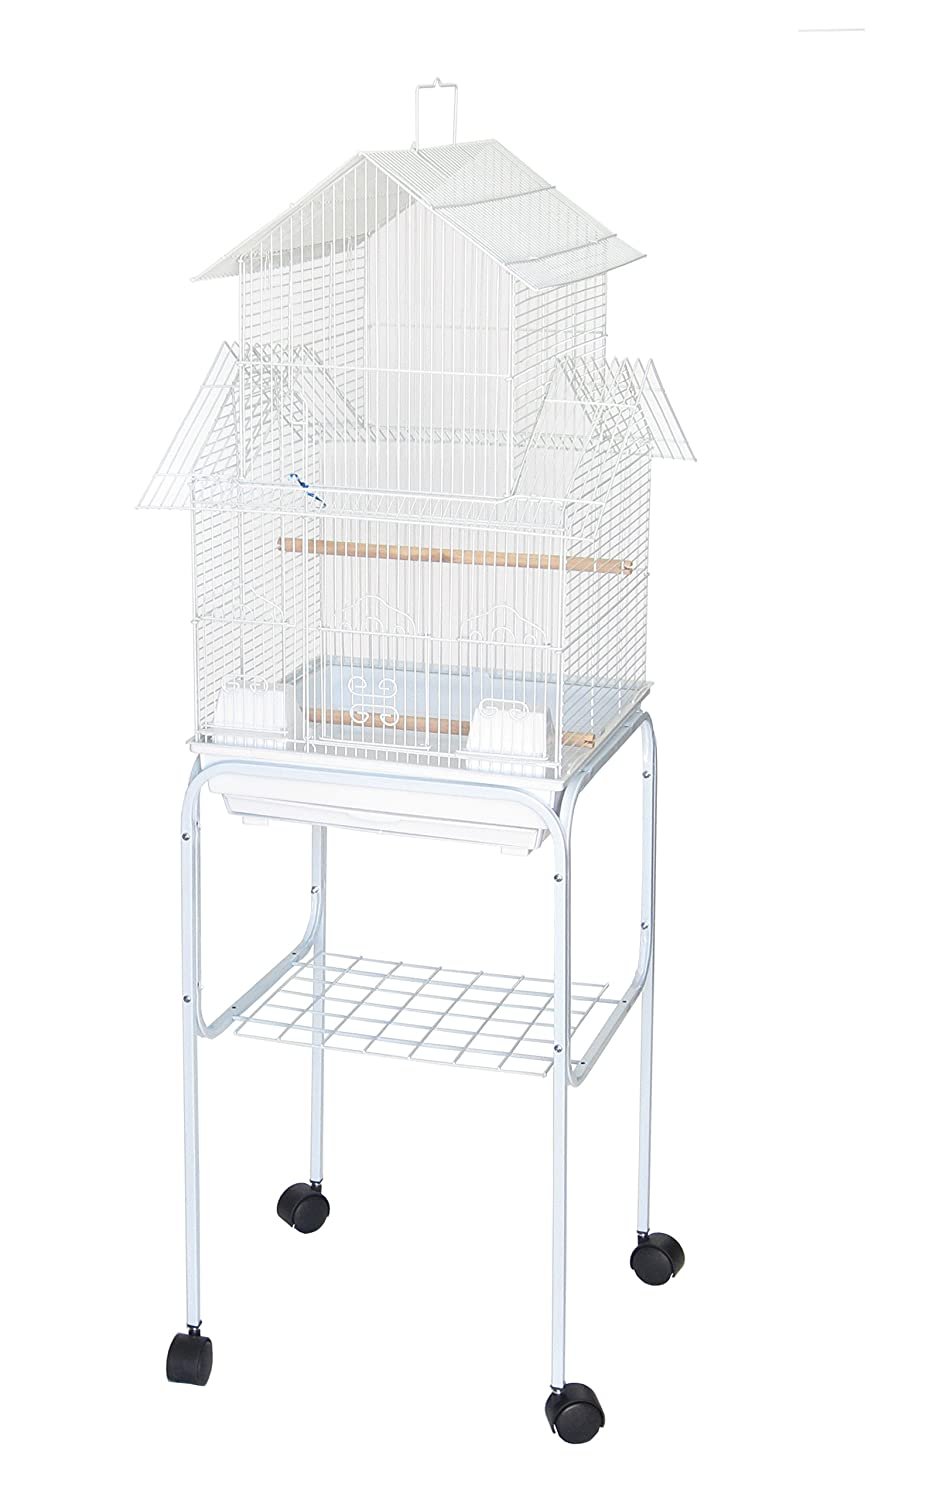 YML 5944 3/8-Inch Bar Spacing Pagoda Bird Cage with Stand, 18-Inch by 18-Inch/Small, White 5944_4814WHT